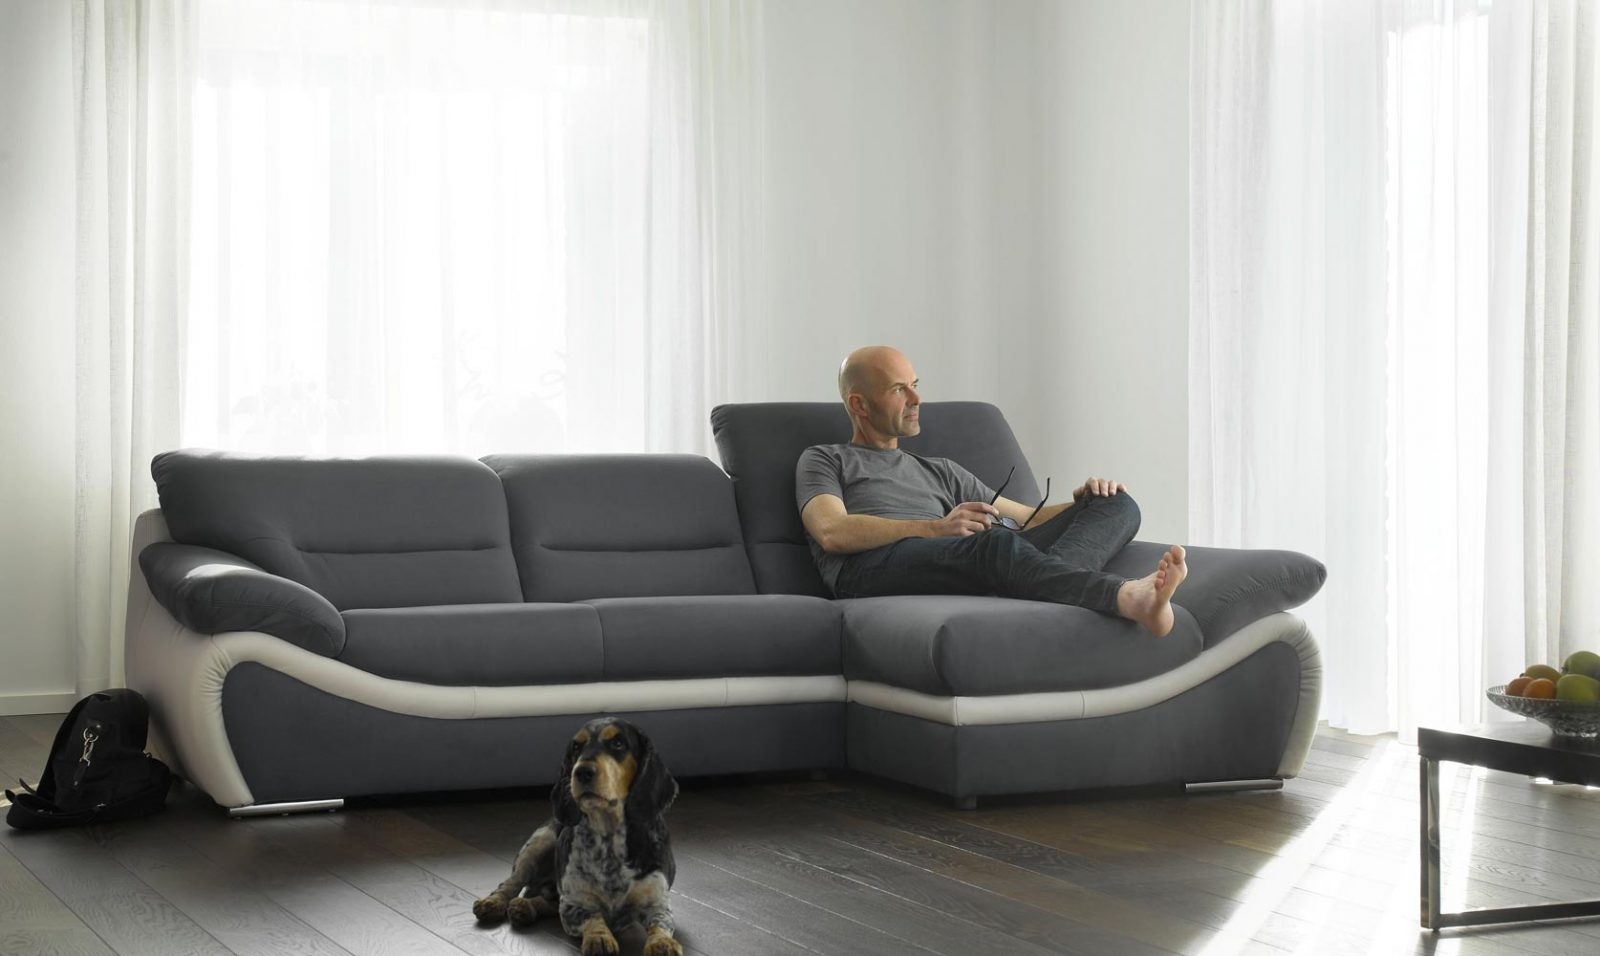 Sof chaise longue contempor neo im genes y fotos for Sofas contemporaneos